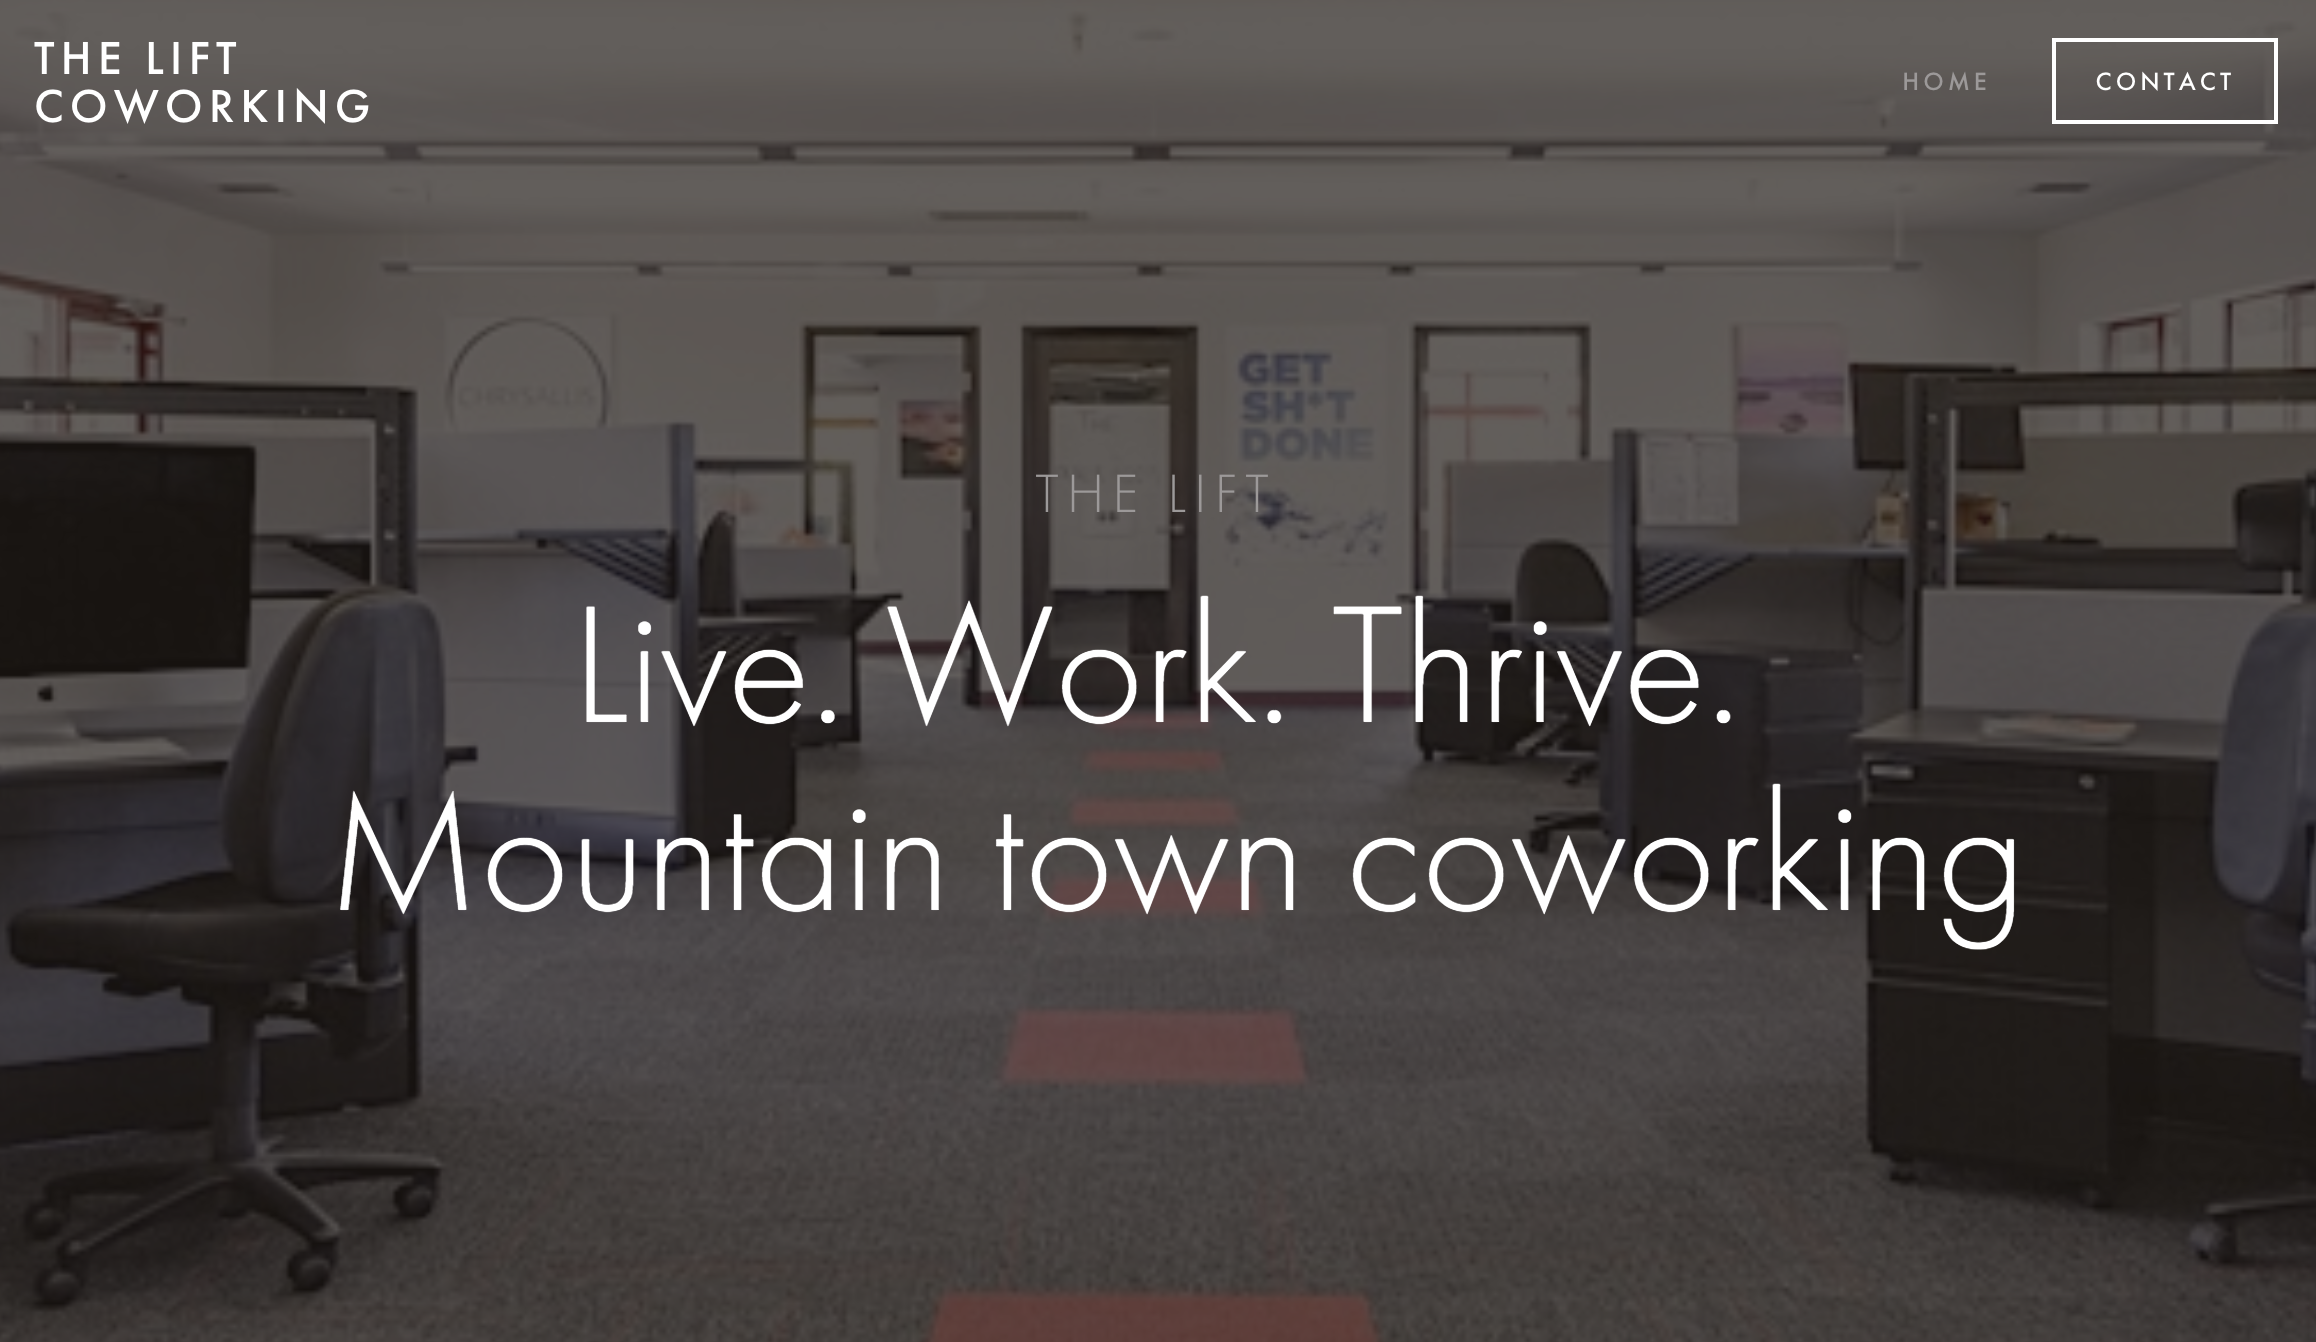 The Lift Coworking -  Small Business/Startup/Community Org.